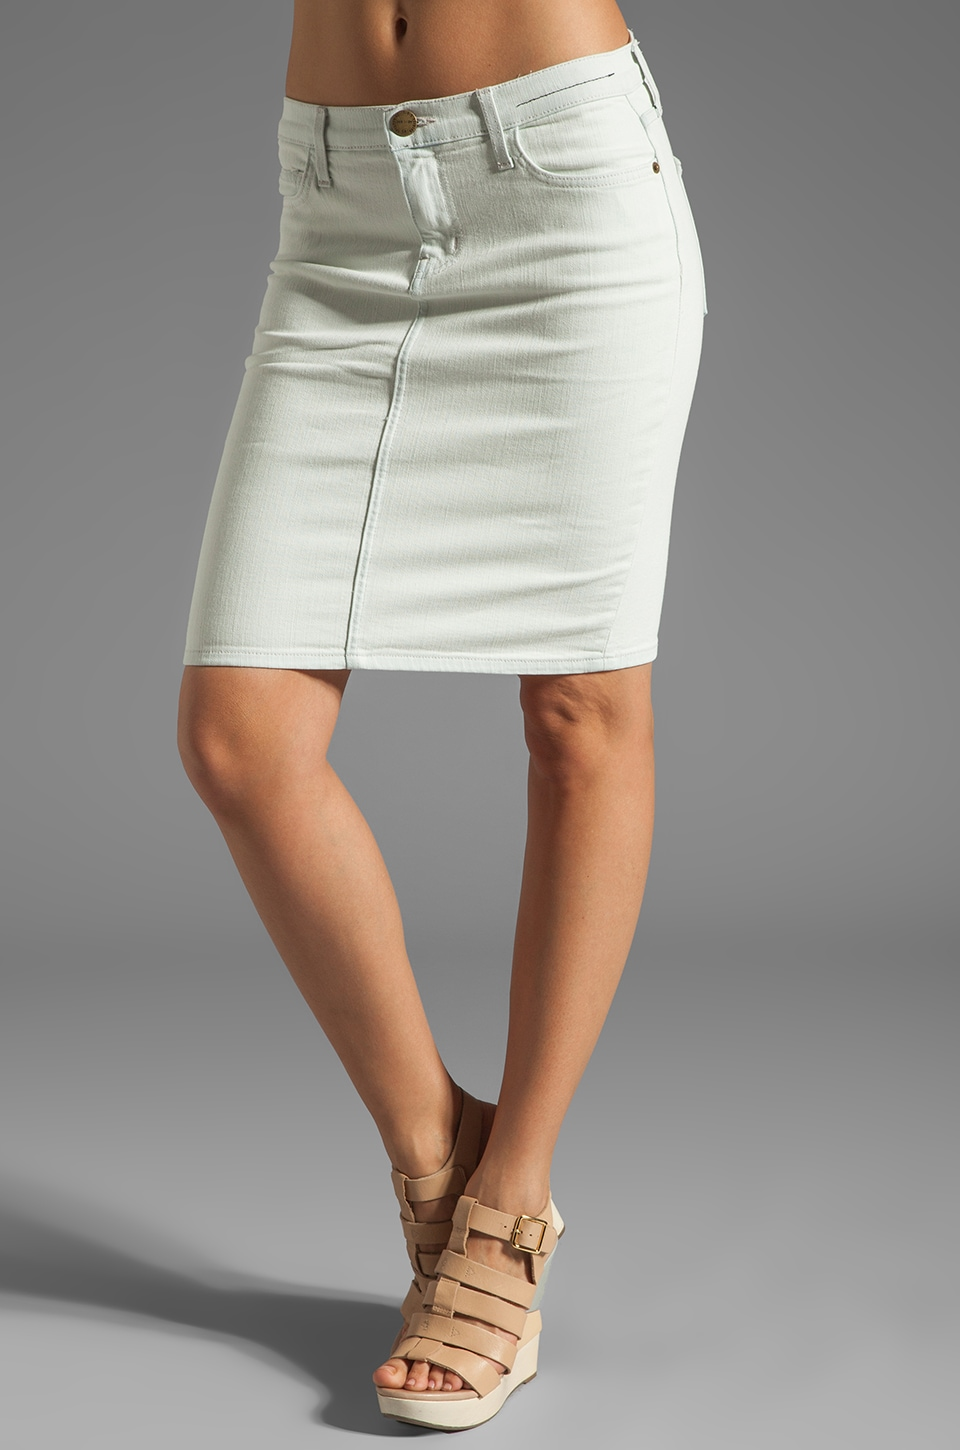 Current/Elliott The Pencil Skirt in Sun Bleached